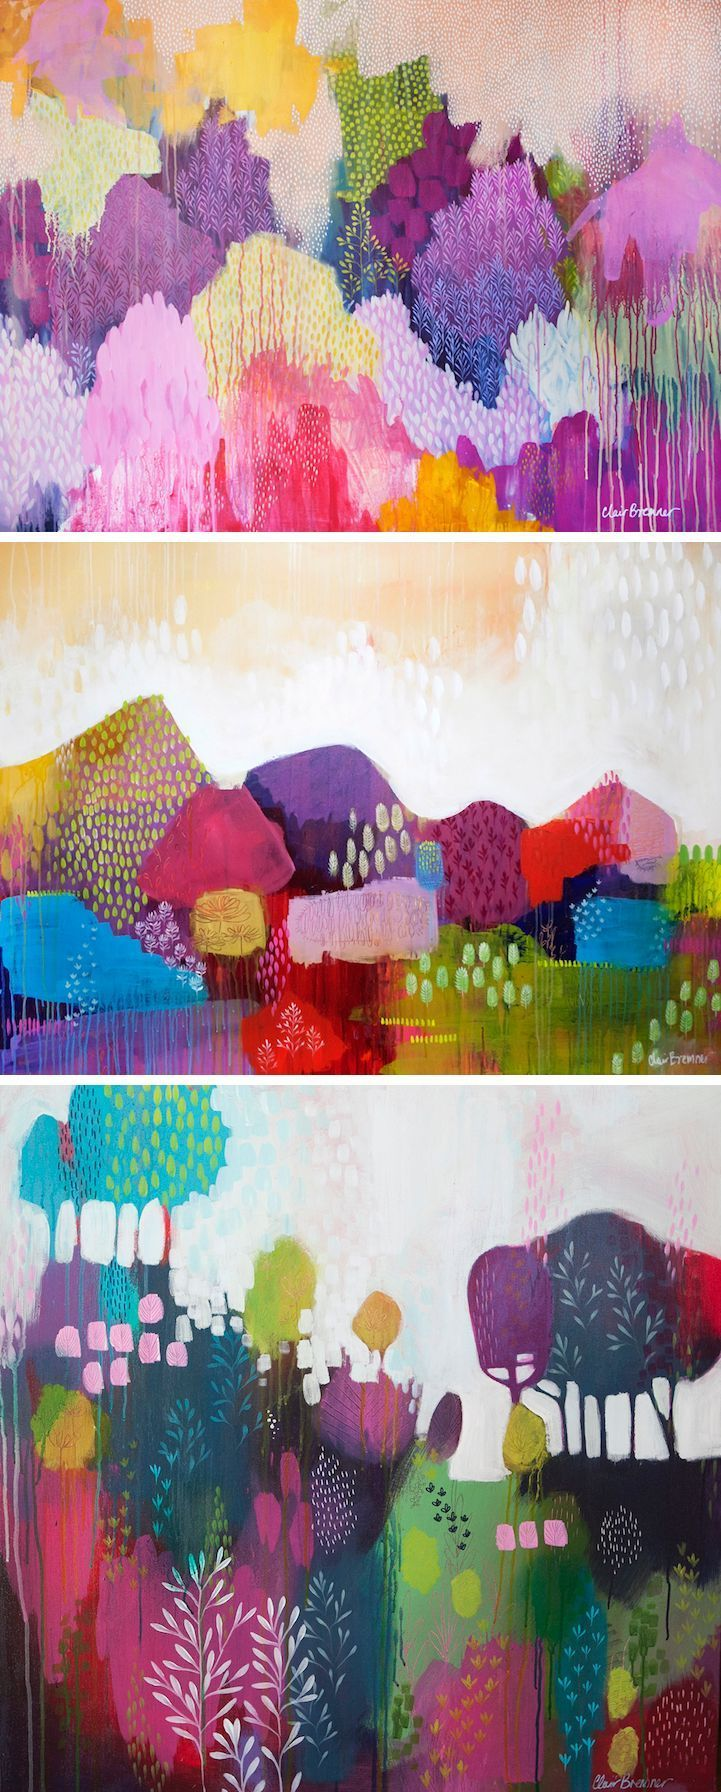 exquisite paintings render the beauty of nature in drips dots and dazzling color is part of Art - Exquisite Paintings Render the Beauty of Nature in Drips, Dots, and Dazzling Color ModernAbstract art